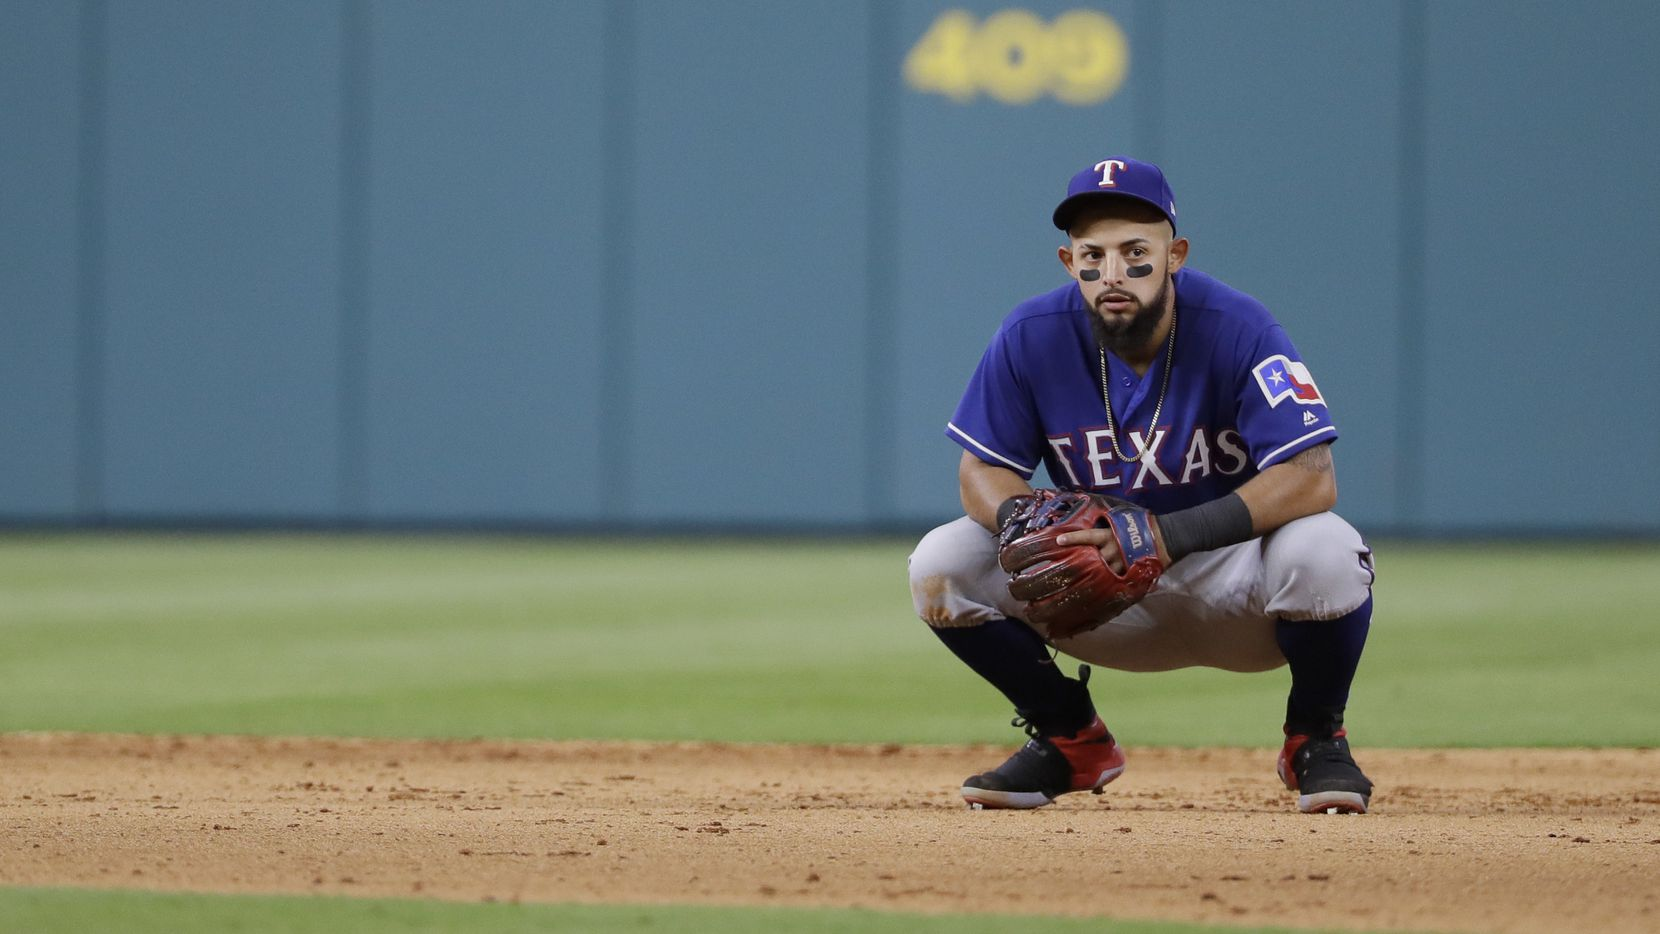 Texas Rangers second baseman Rougned Odor waits between batters during the seventh inning of a baseball game against the Houston Astros Monday, May 1, 2017, in Houston. (AP Photo/David J. Phillip)